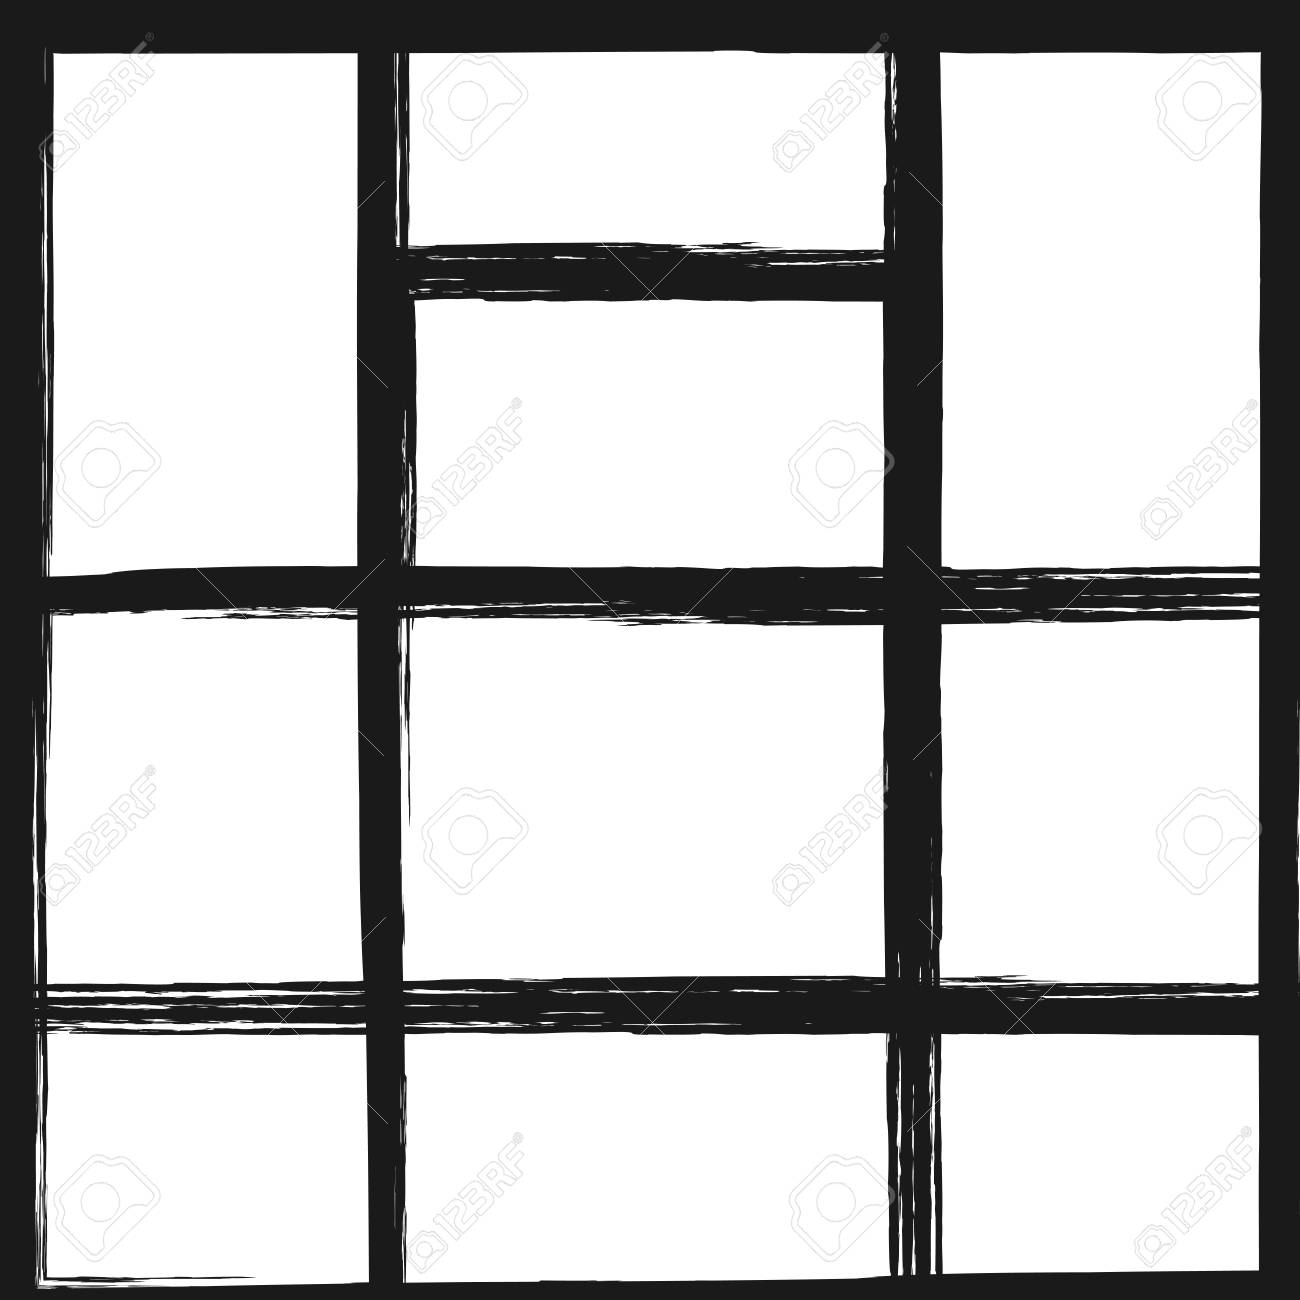 Template For Photo Collage Square Background With Rectangular